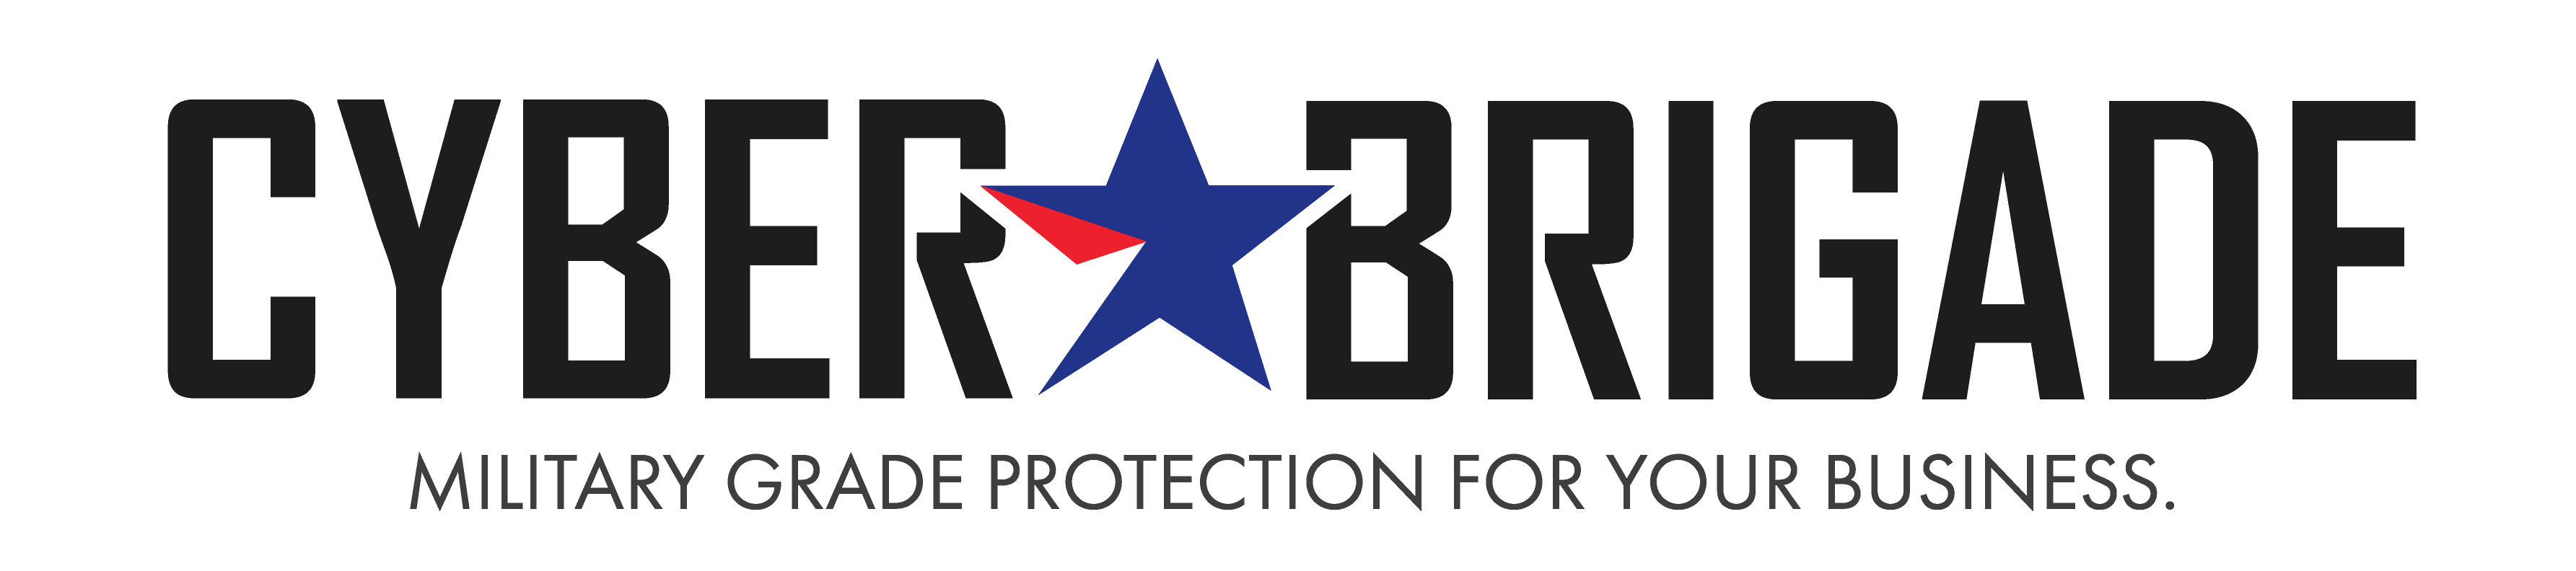 Cyber Brigade - Military Grade Cyber Security and IT Services